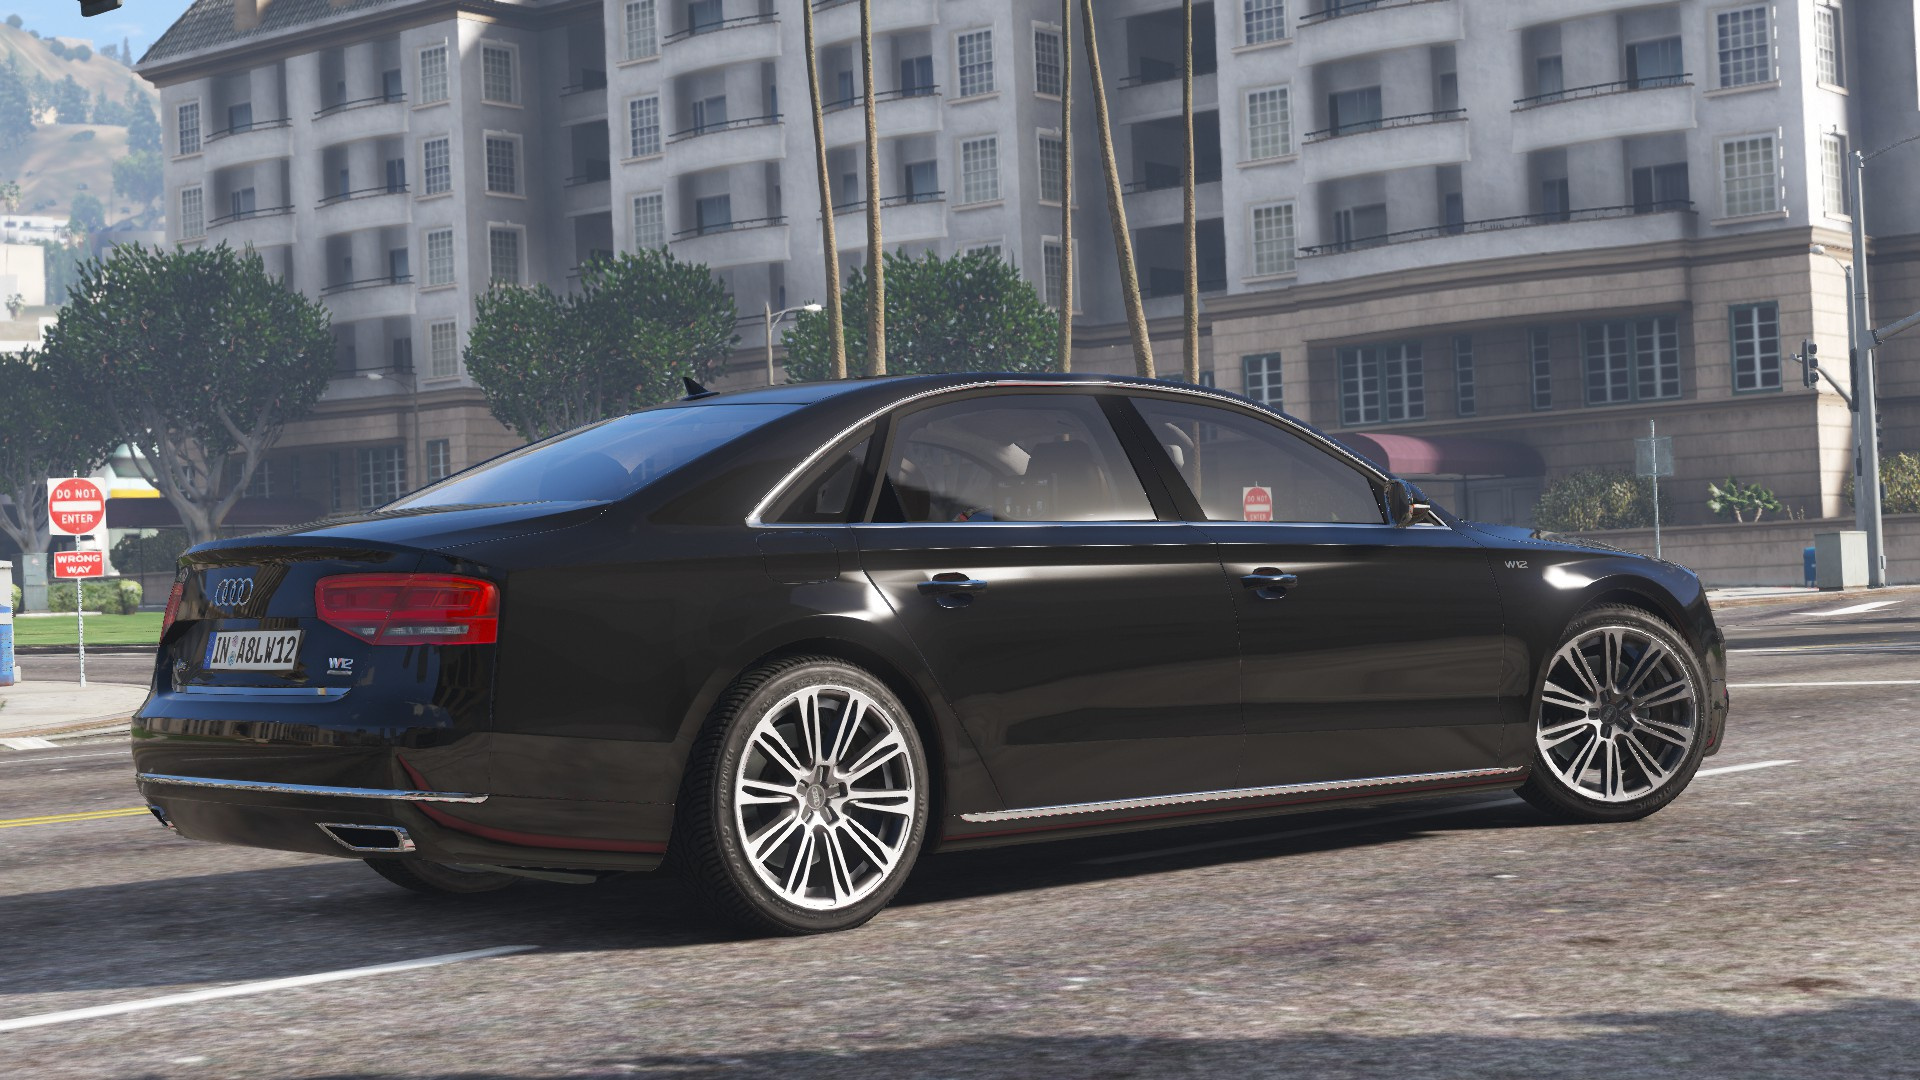 2010 Audi A8 L W12 Quattro Add GTA5 Mods